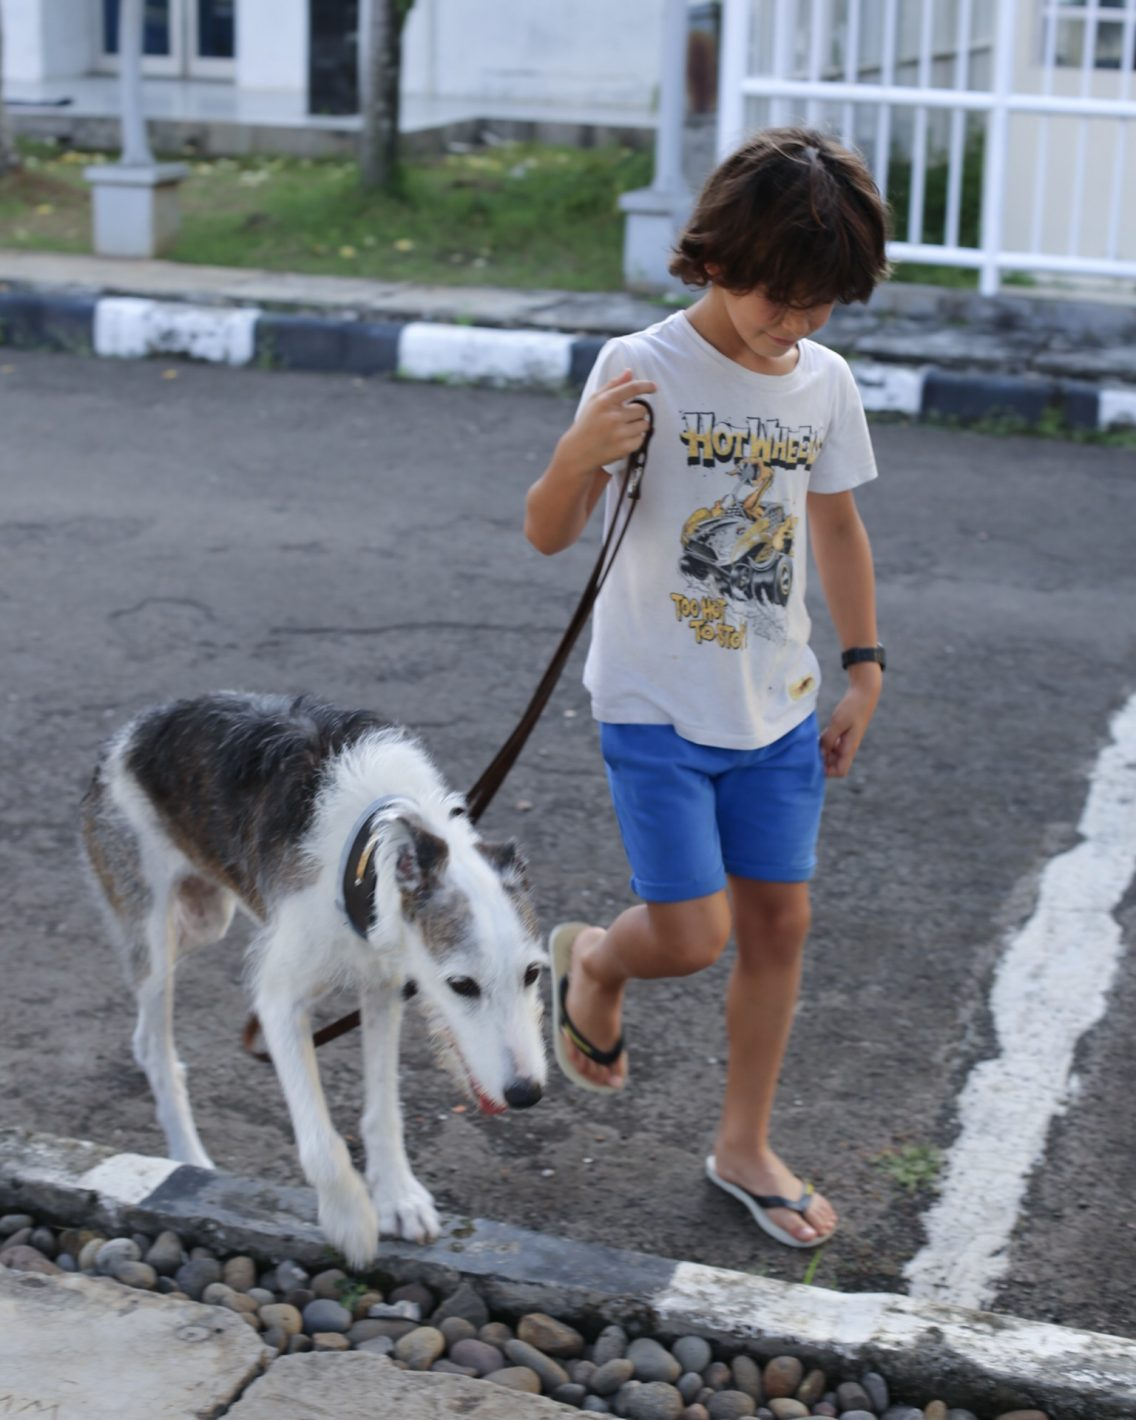 Taking Panchi for a walk while at the quarantine after a very long flight, enjoying freedom after beeing in the carrier for so many hours